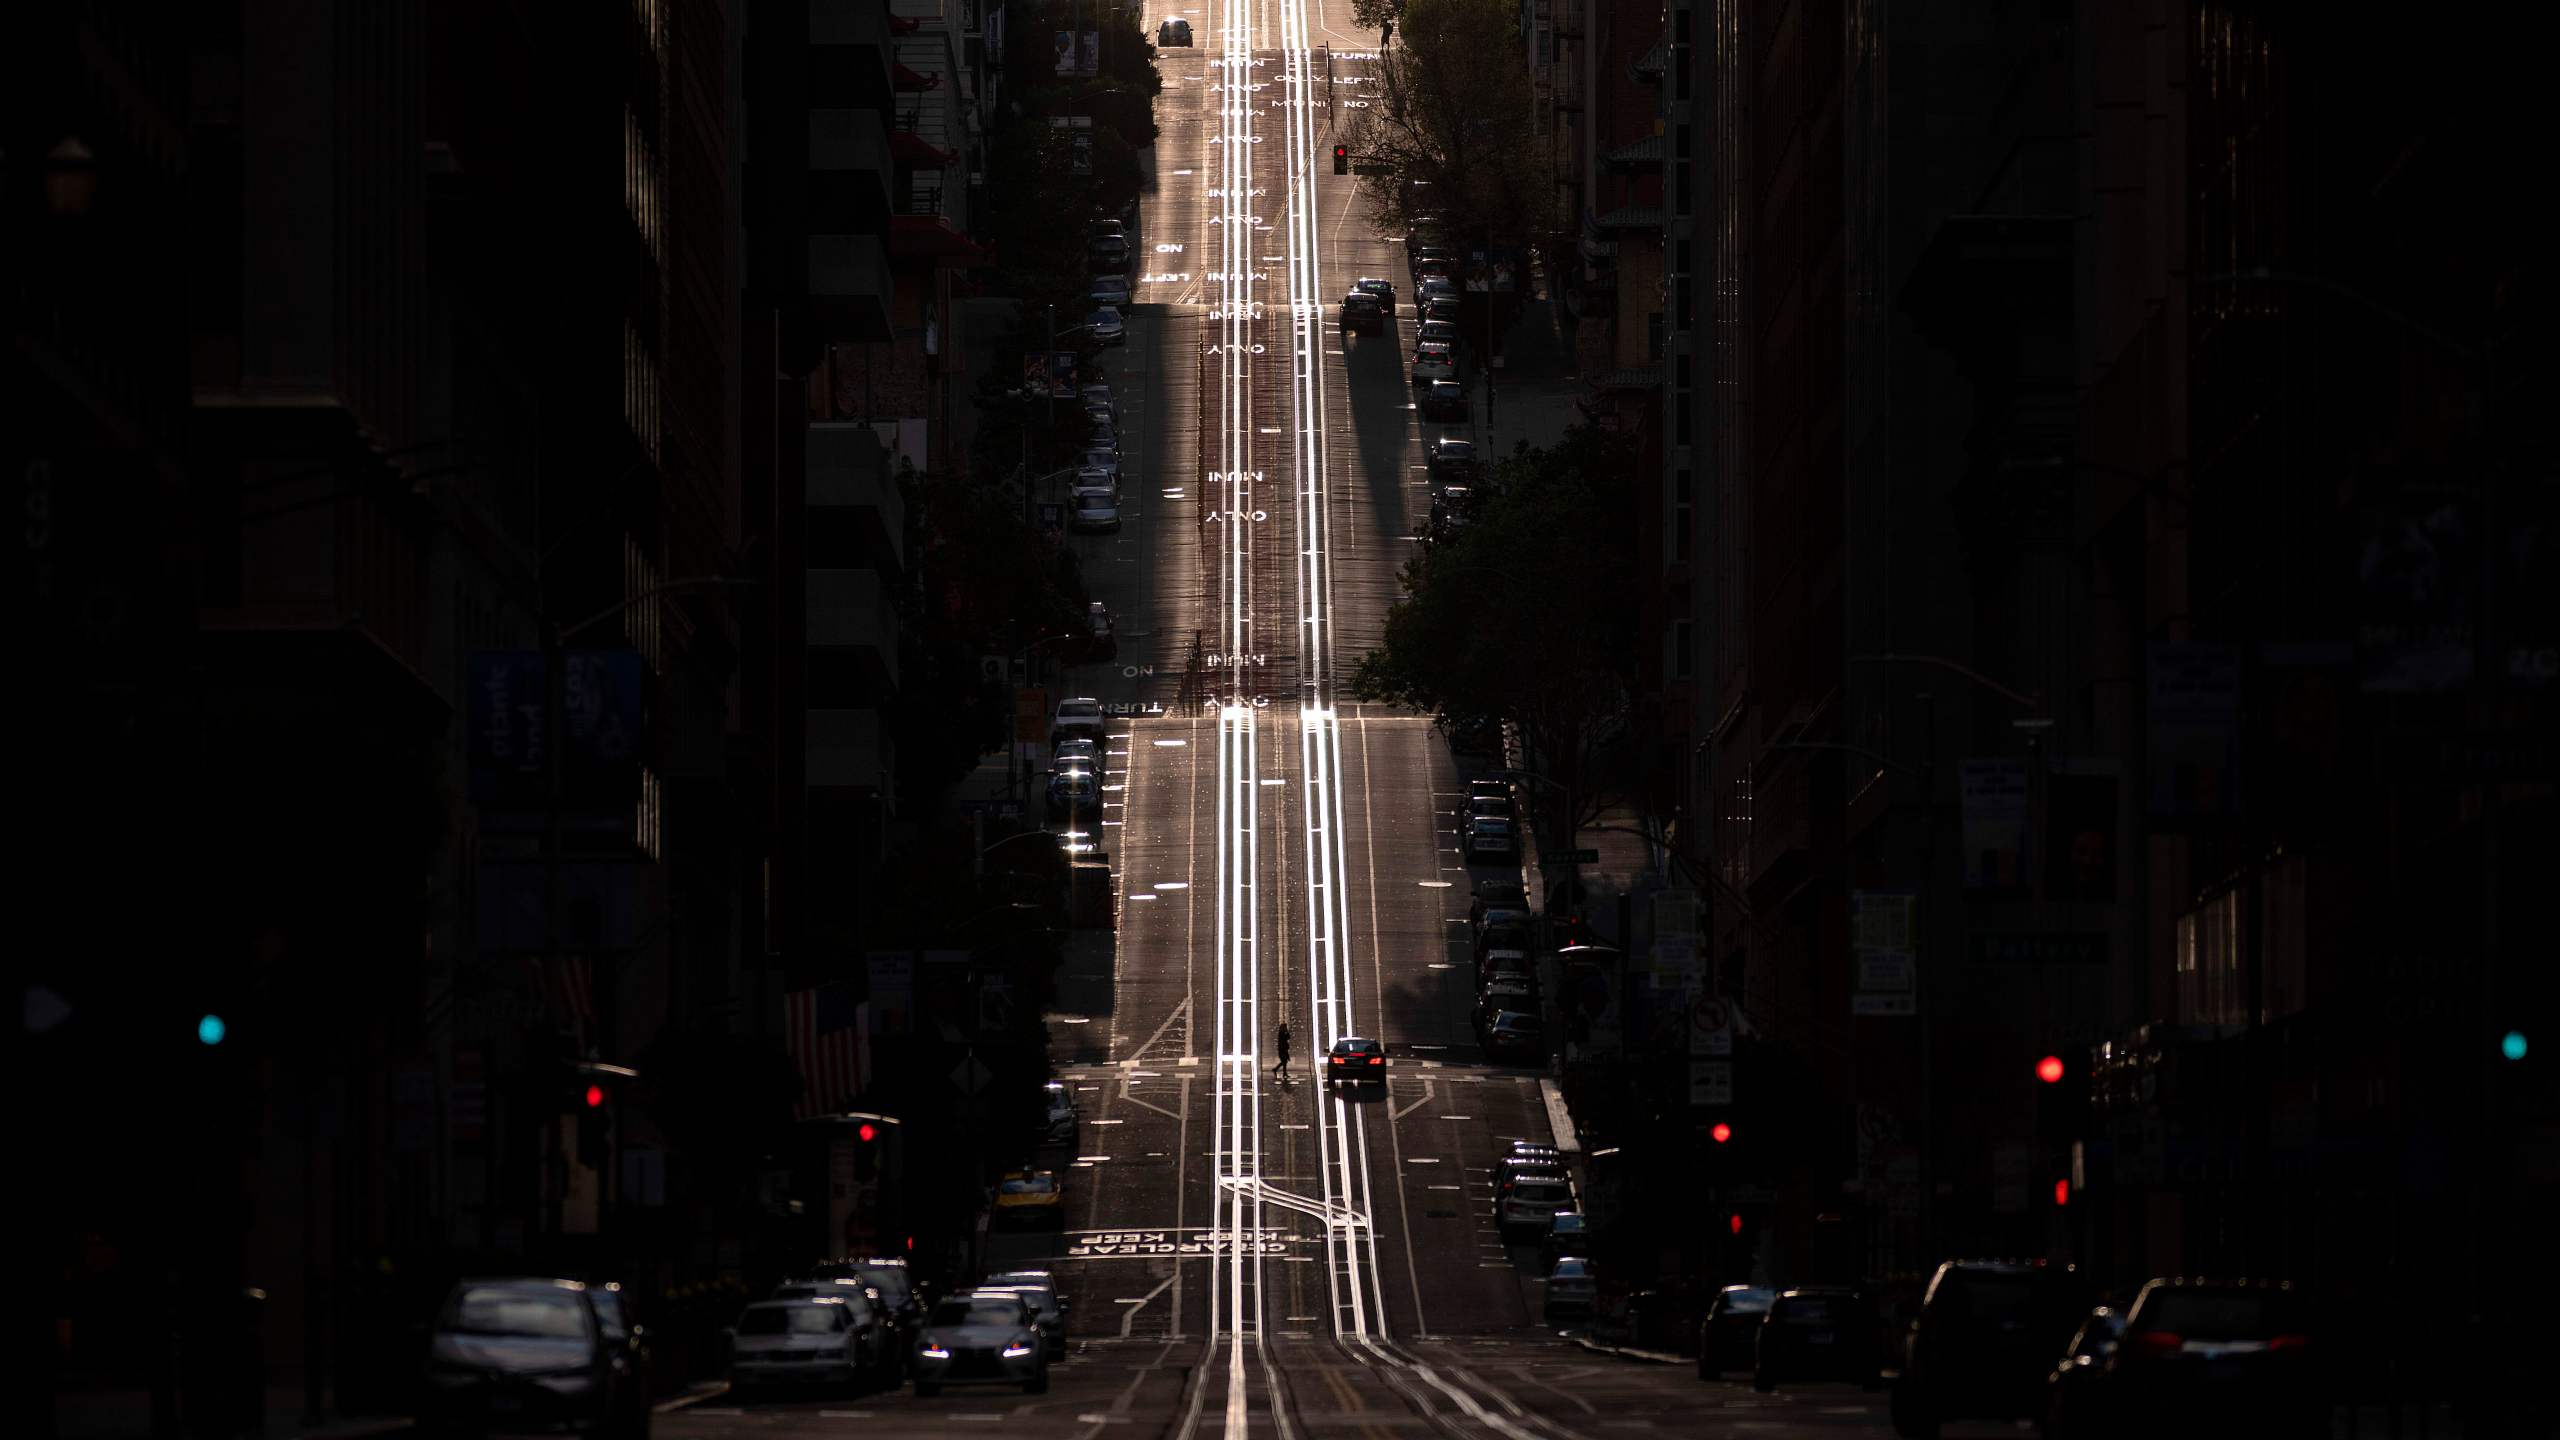 A street usually filled with cable cars is seen empty in San Francisco on March 18, 2020. (Josh Edelson/AFP via Getty Images)